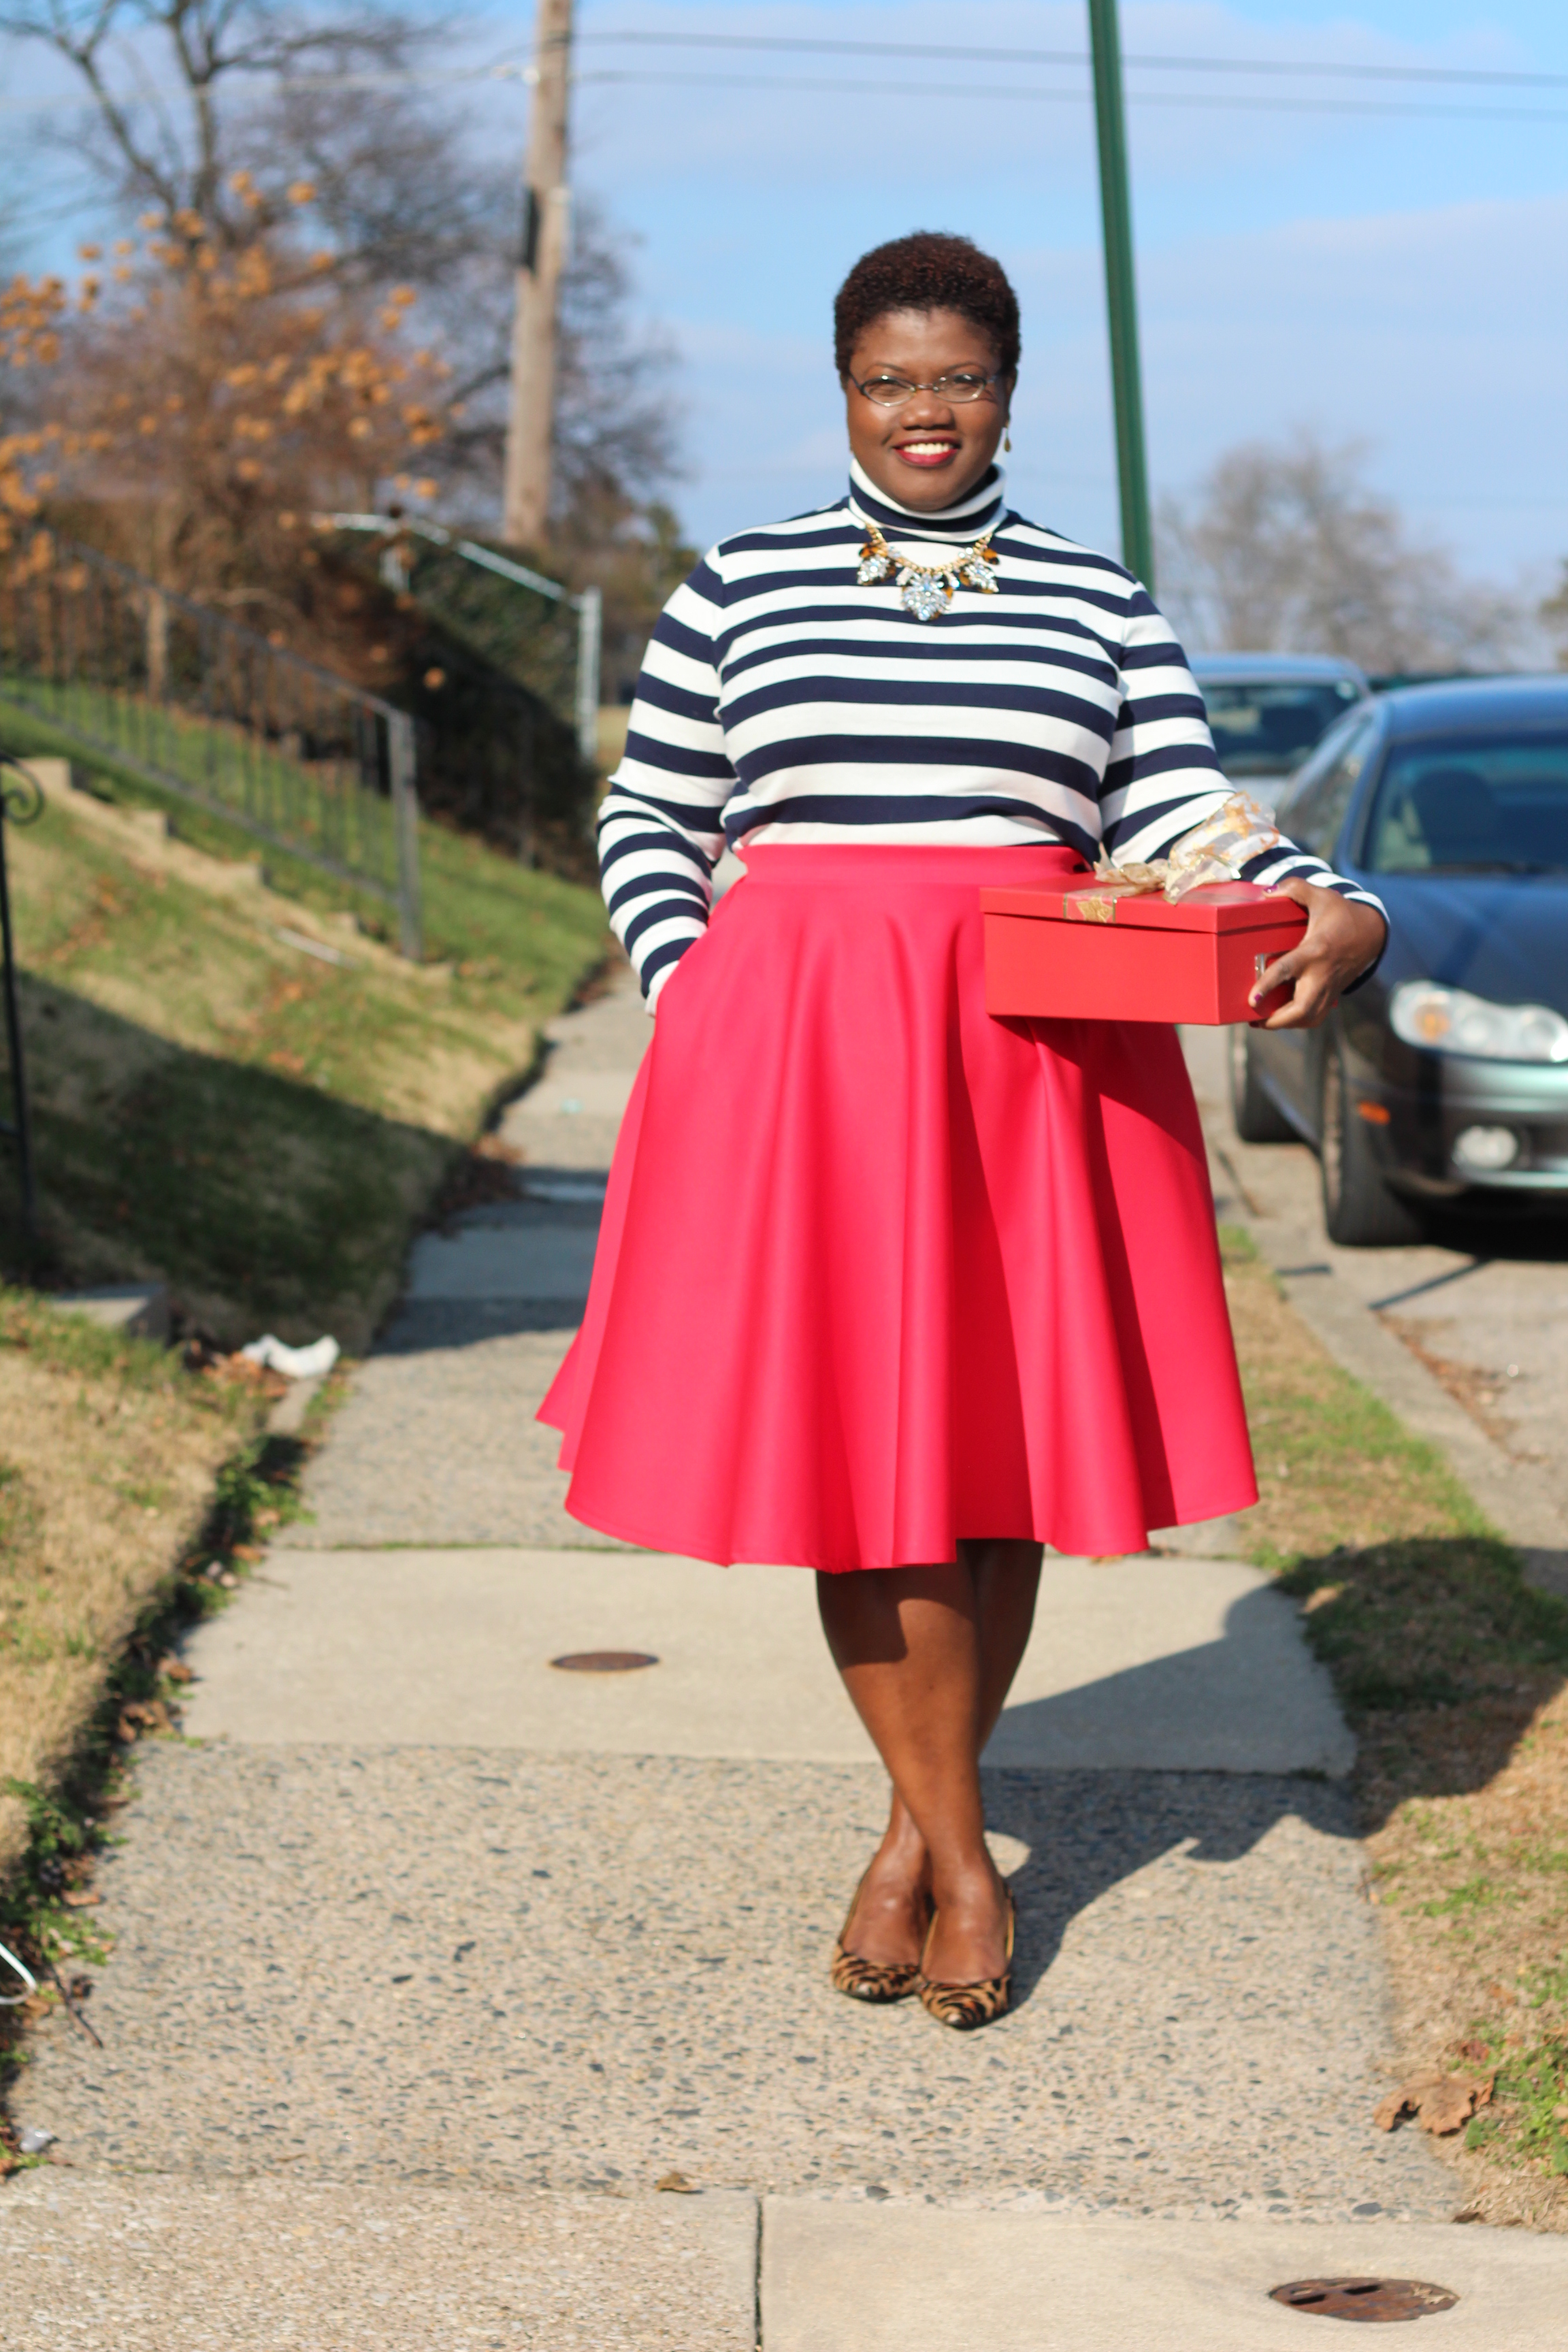 plus size fashion, plus size, midi skirts, color blocking, monochrome, plus size bloggers, plus size blogs, curvy bloggers, curvy blogger, leopard print, stripes, winter, winter fashion,  pencil skirts, sequins, off the shoulder tops, grown and curvy woman, grown and curvy woman blog, grown and curvy, plus size holiday fashion, statement necklace